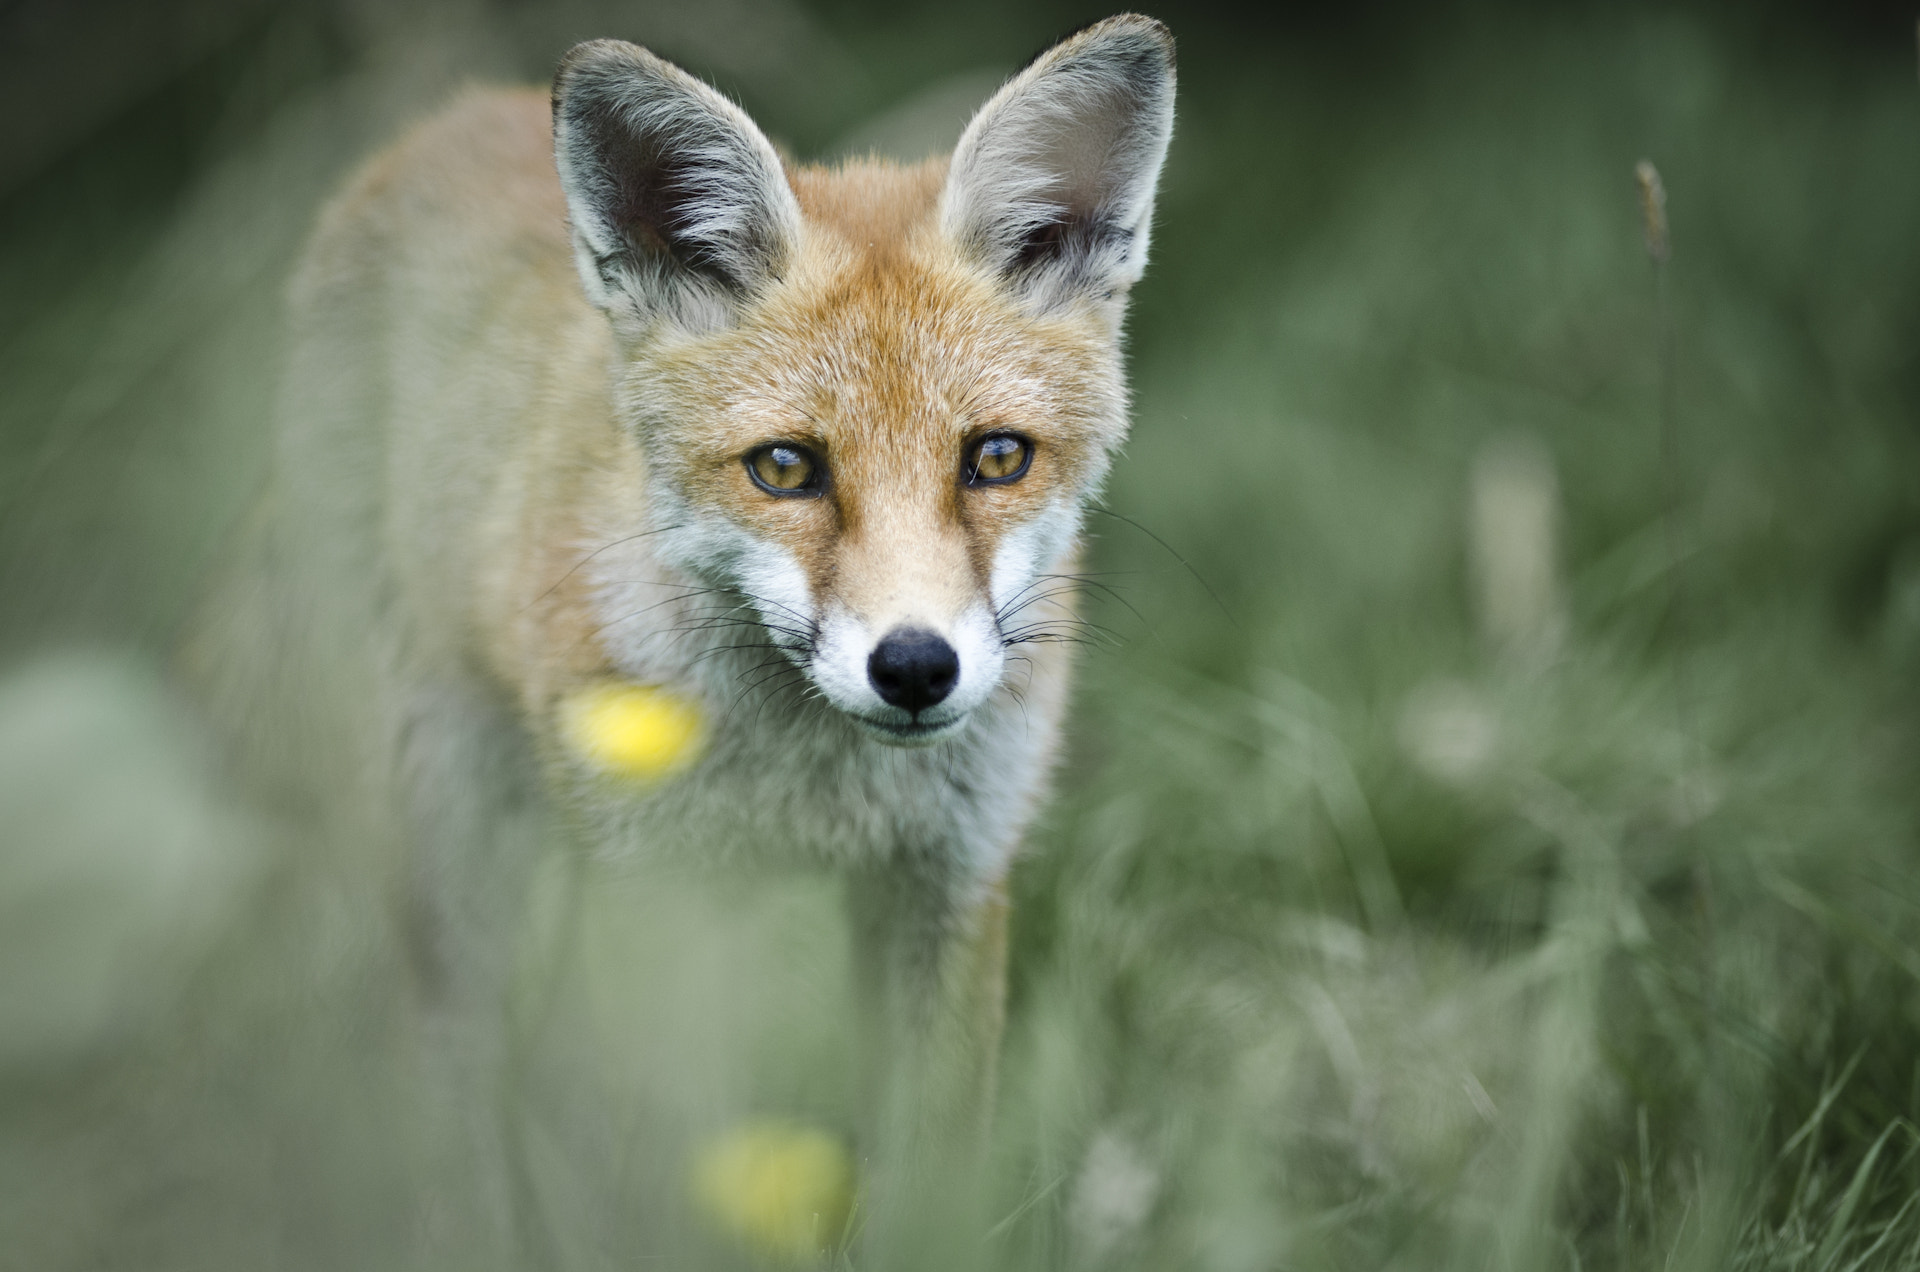 Photograph Fox in the grass by Luke Millward on 500px